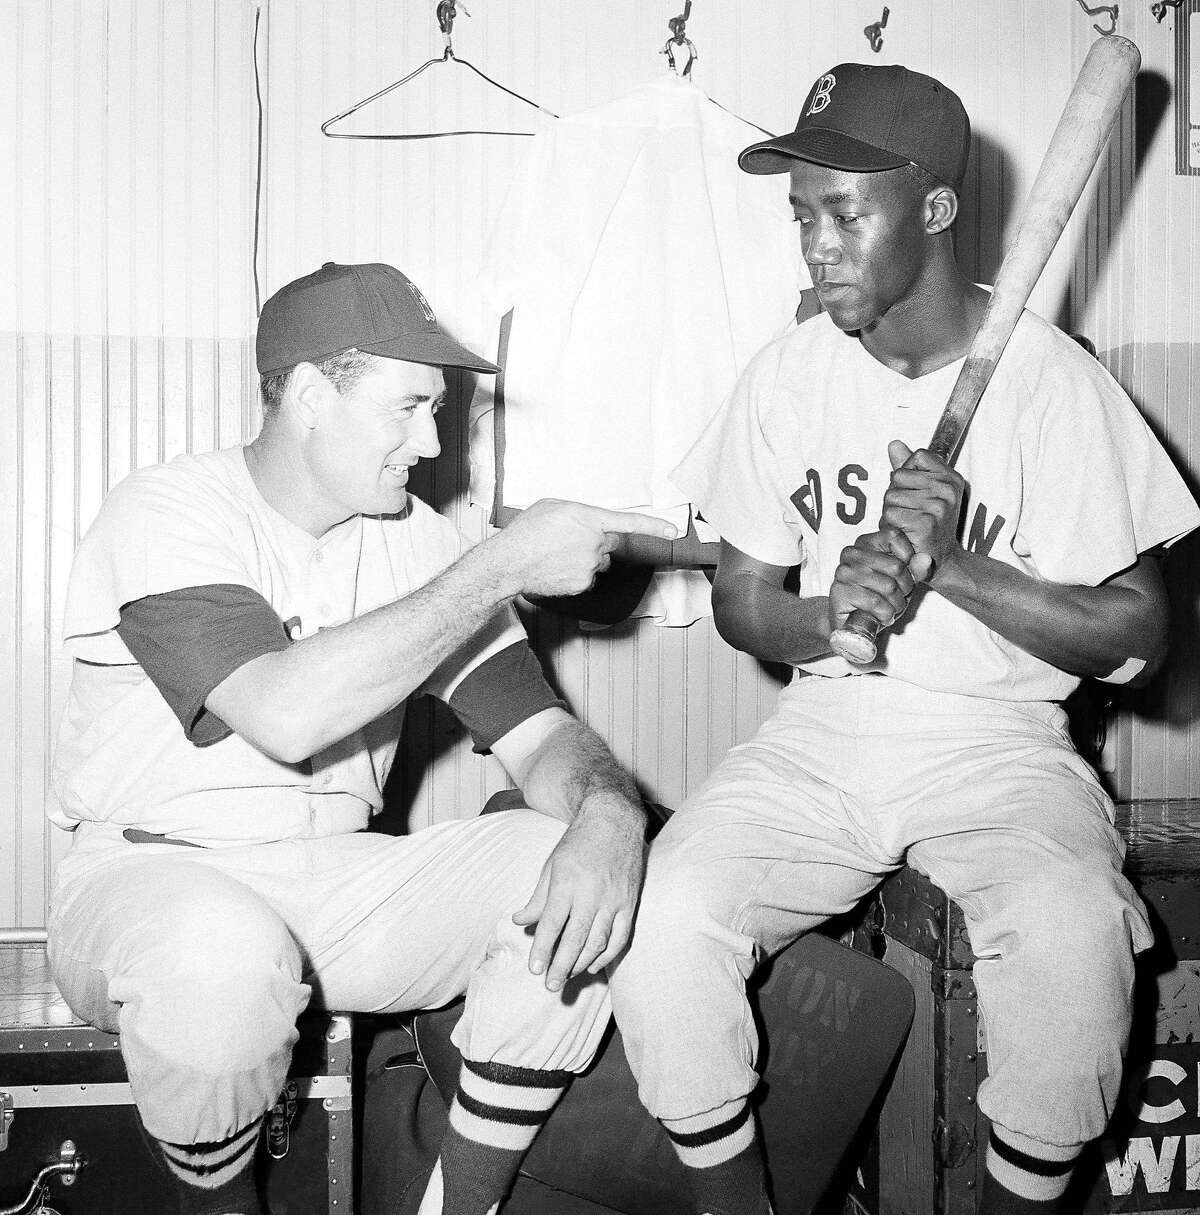 Elijah (Pumpsie) Green, right, an infielder who was recalled from the Minneapolis Farm club to join the Boston Red Sox, is given some friendly tips by Ted Williams, July 21, 1959, Chicago, Ill. Green became the first African American ever to play for the Red Sox. When Green was assigned to the farm club at the start of the season, the Red Sox were subjected to protest from several groups charging discrimination. (AP Photo/Ed Maloney)